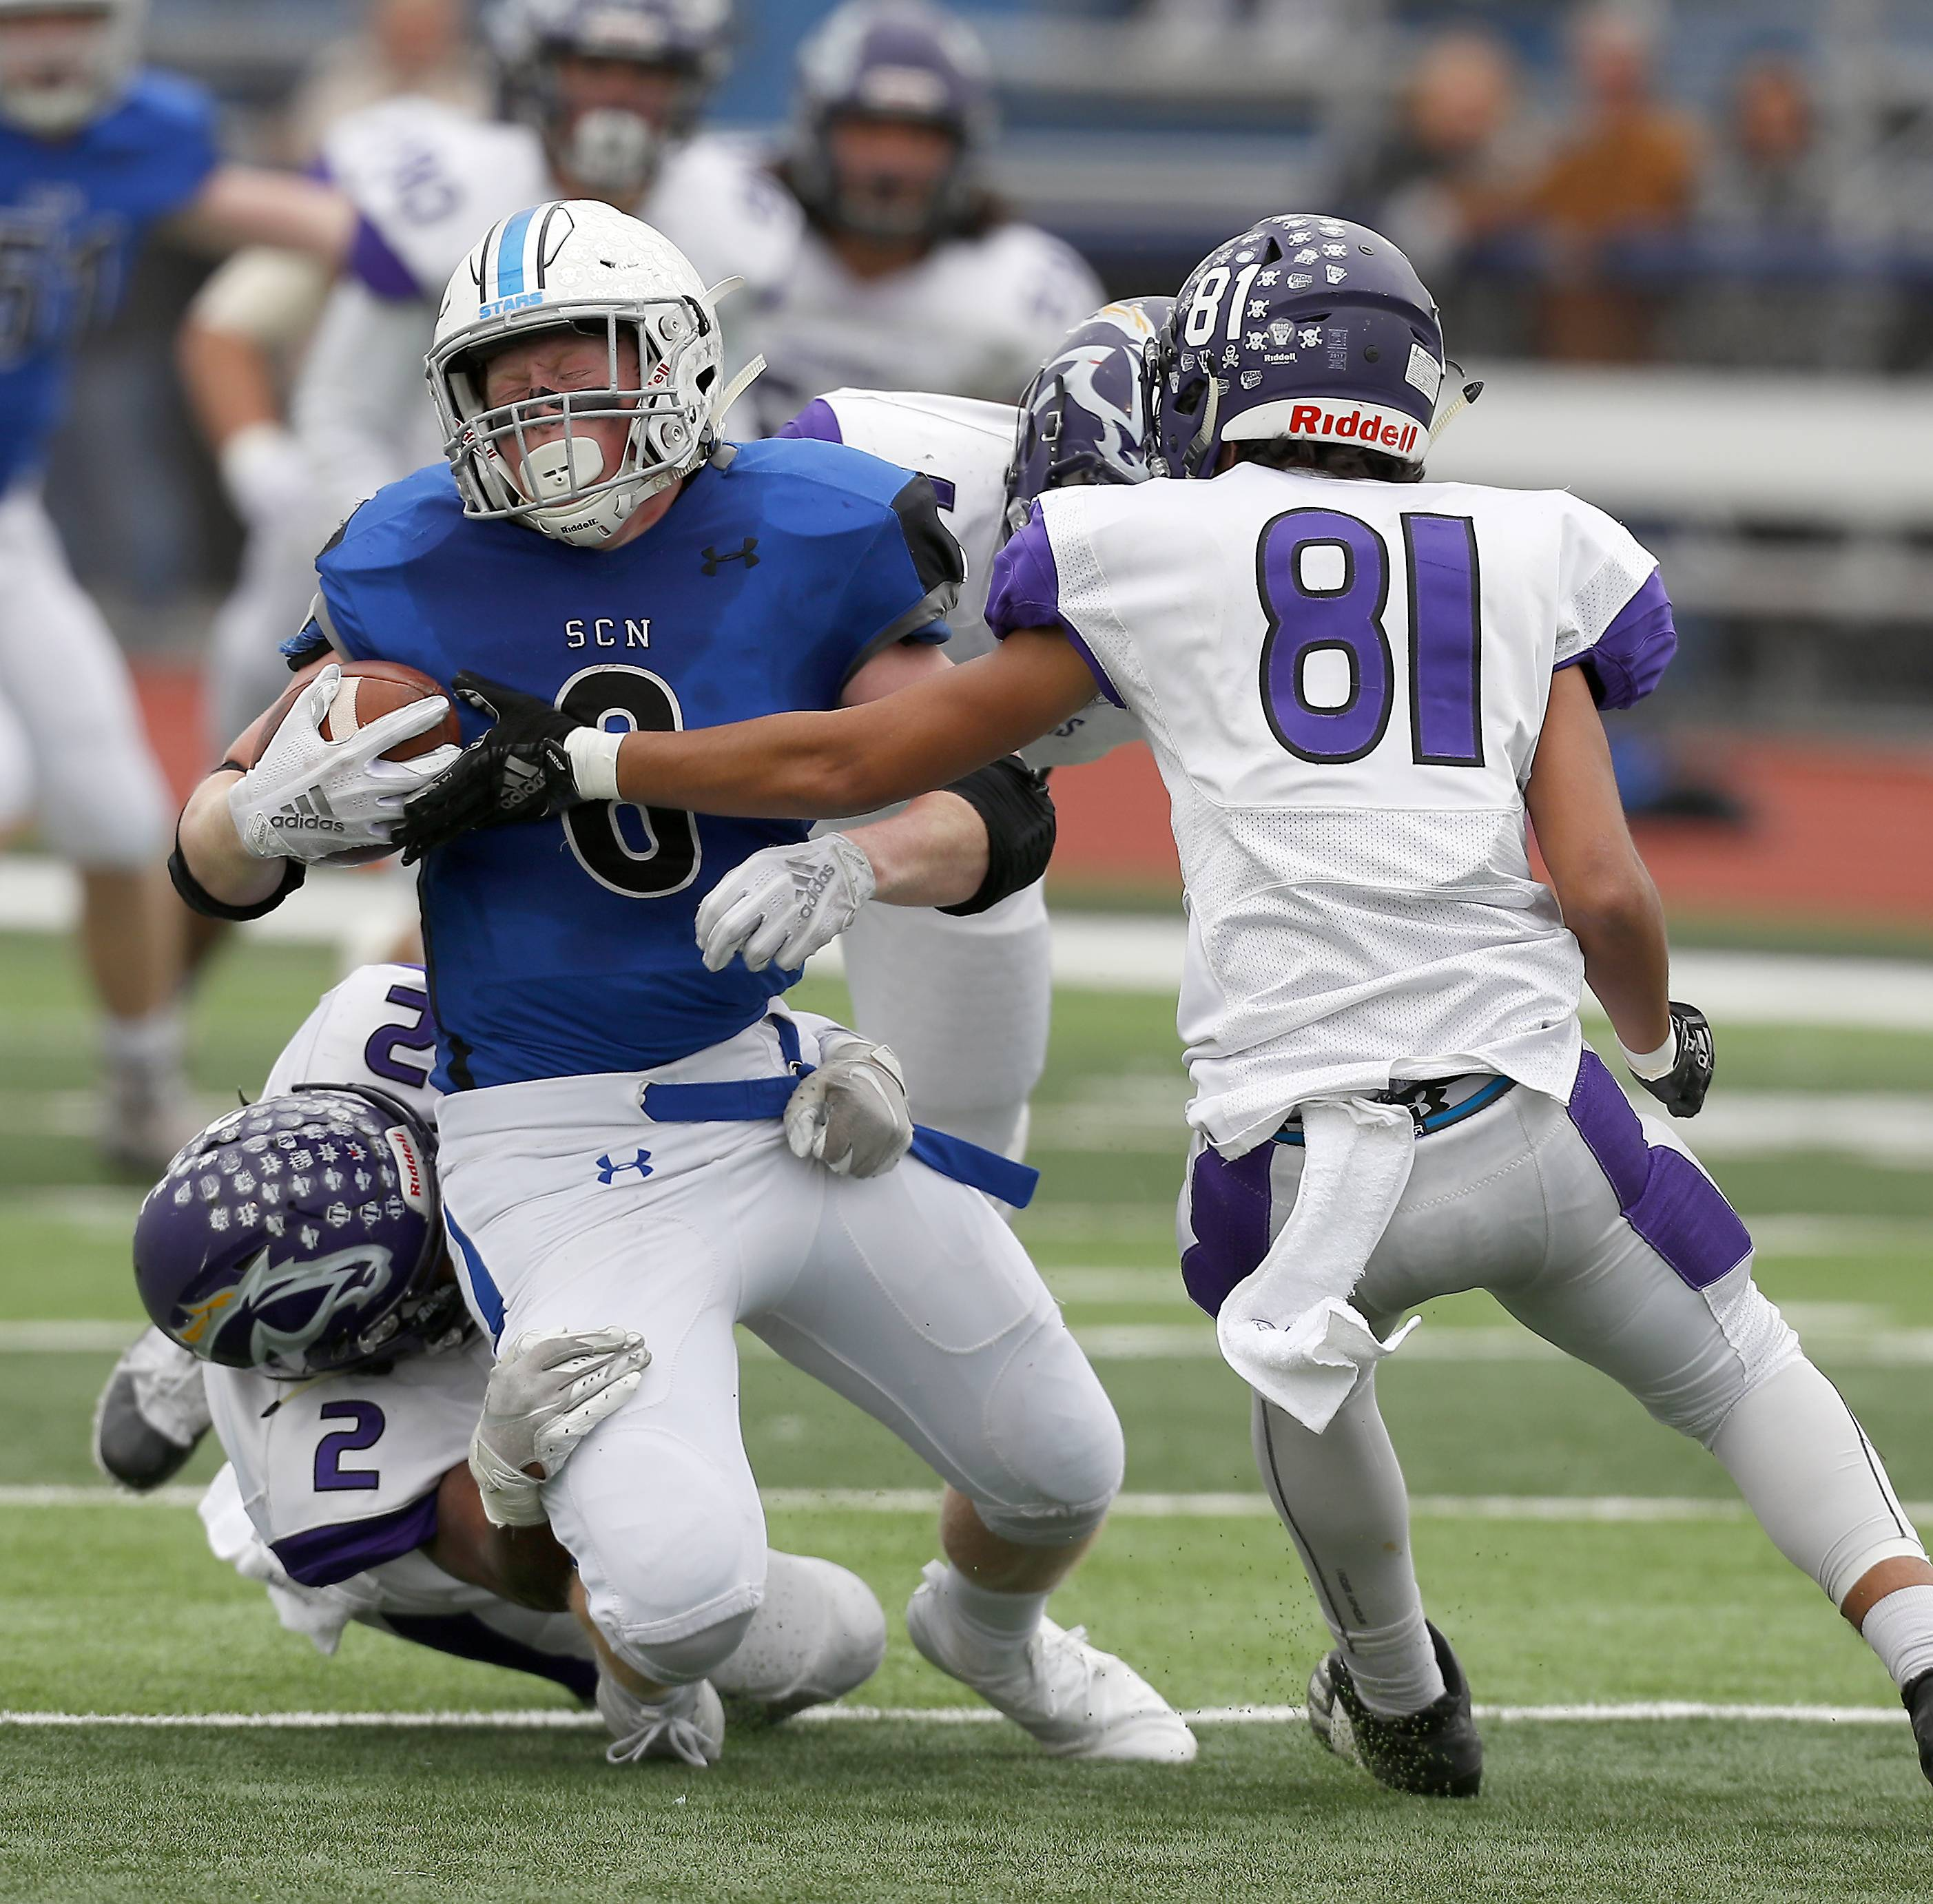 St. Charles North's Ben Furtney (8) slides between Rolling Meadows' Alex Hoffman (8) and Rolling Meadows' TJ Williams (81) Saturday during IHSA Class 7A playoff football in St. Charles.